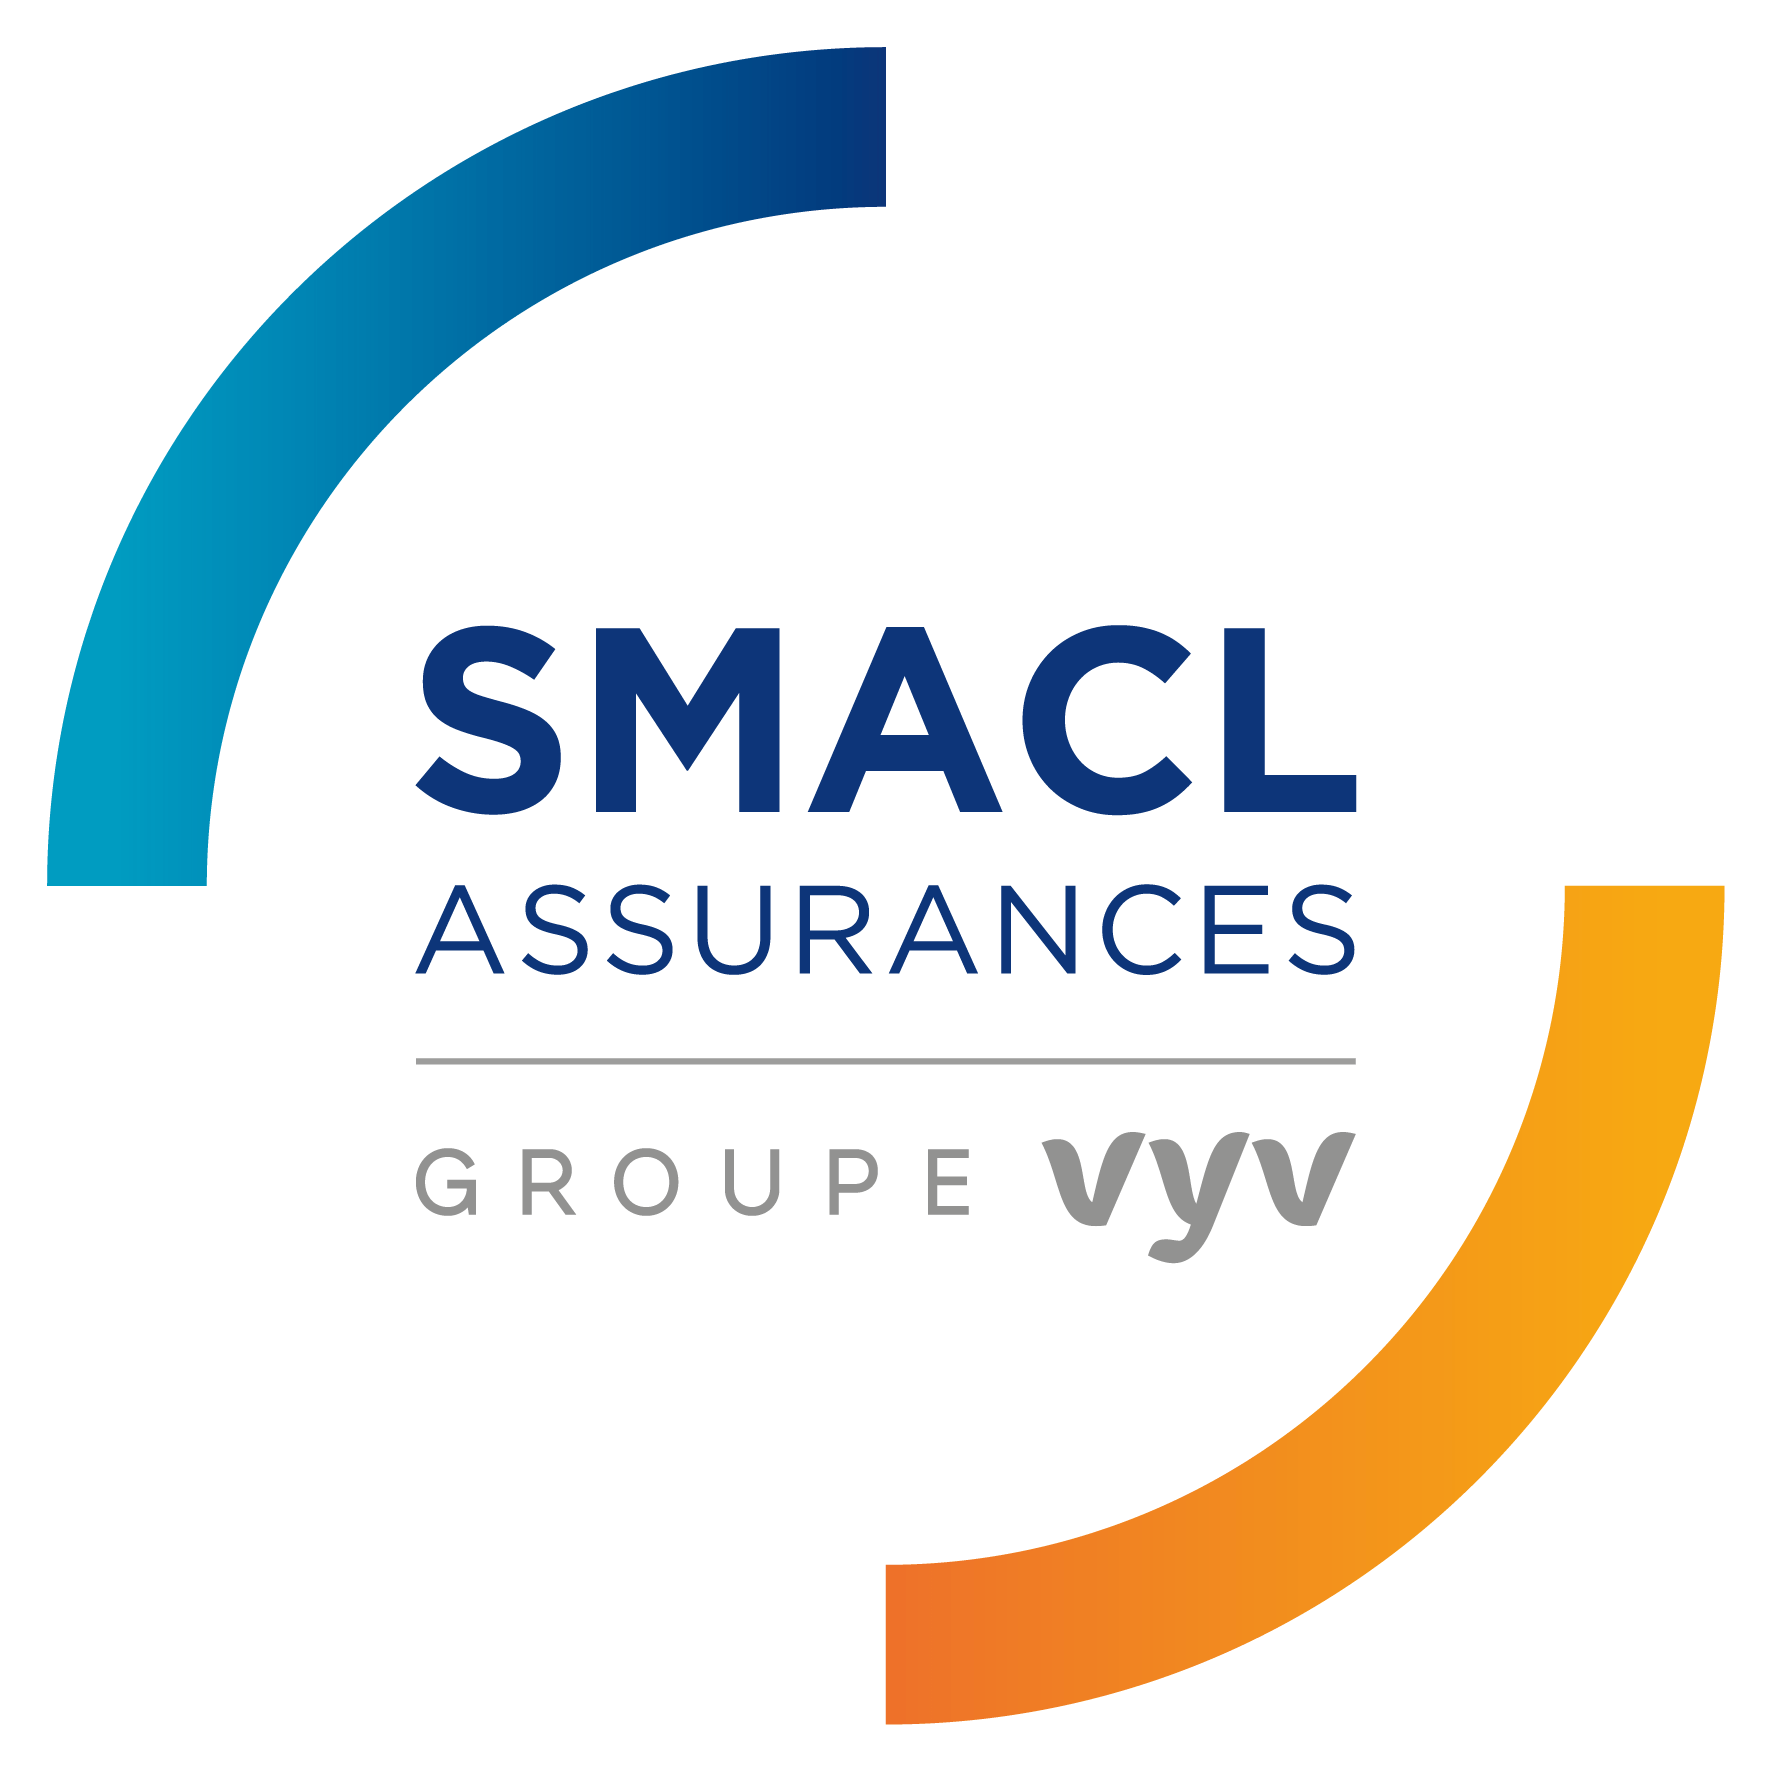 image logo Smacl